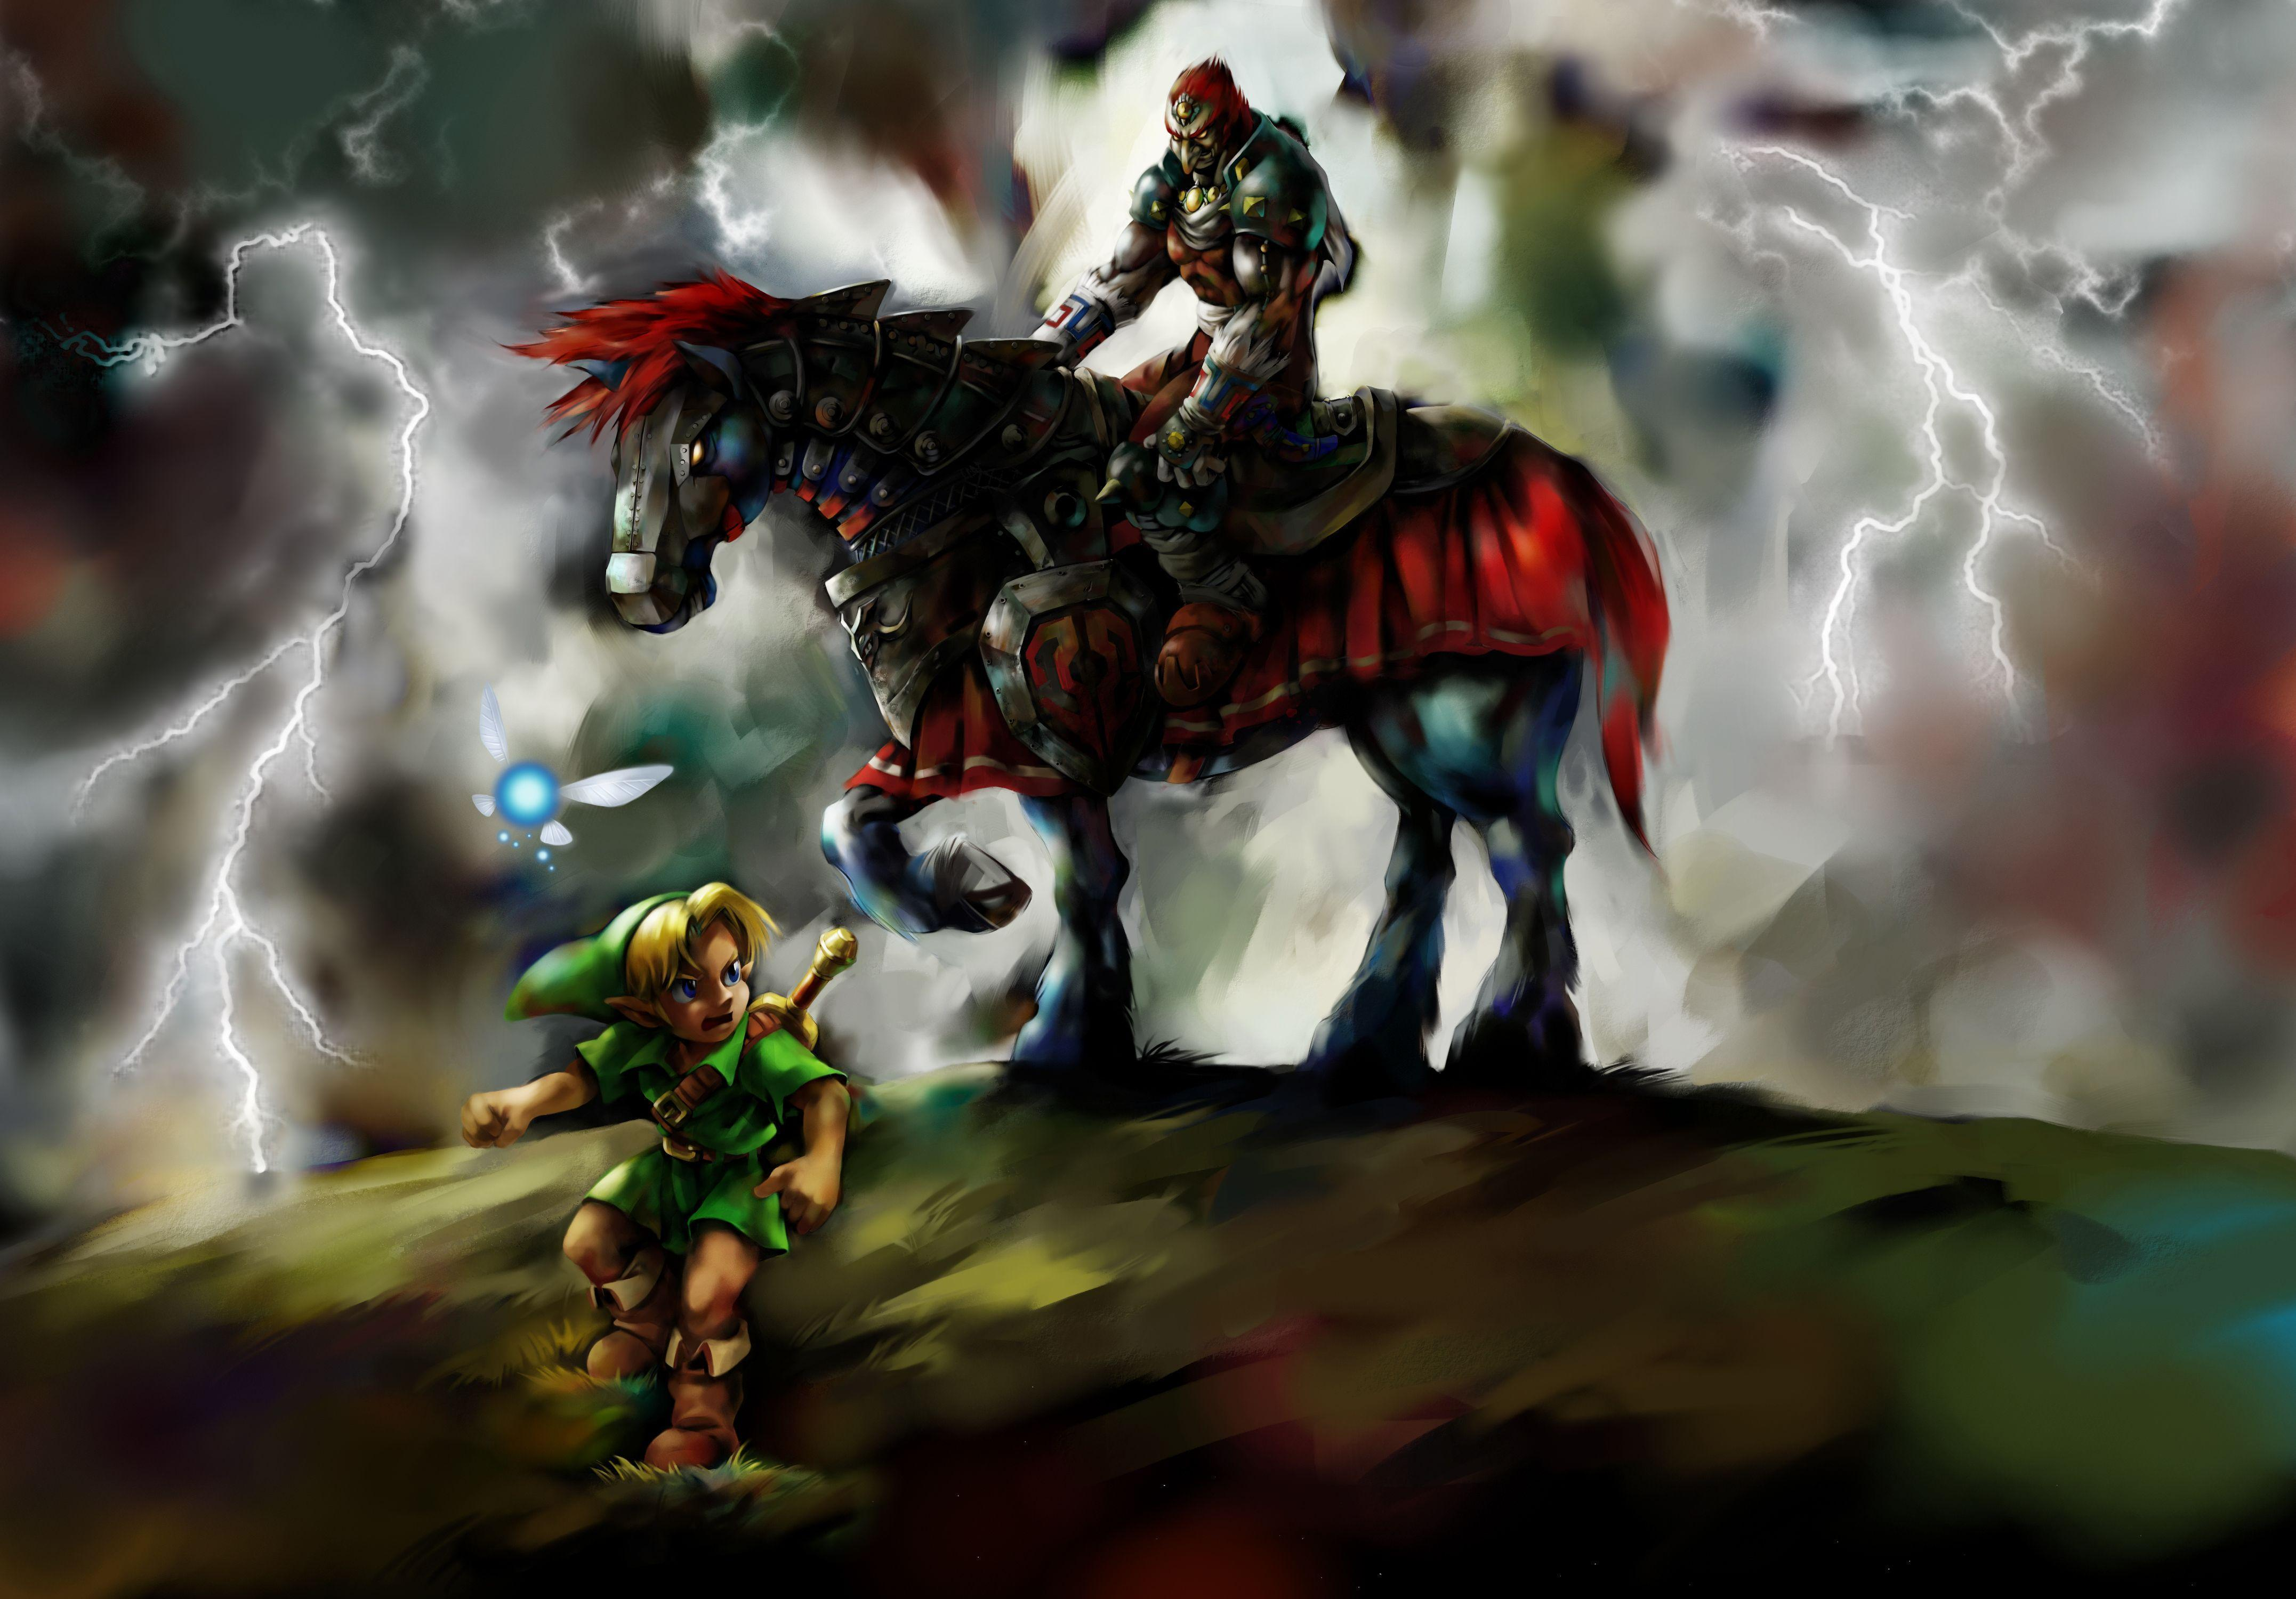 Awesome Ocarina of Time wallpapers